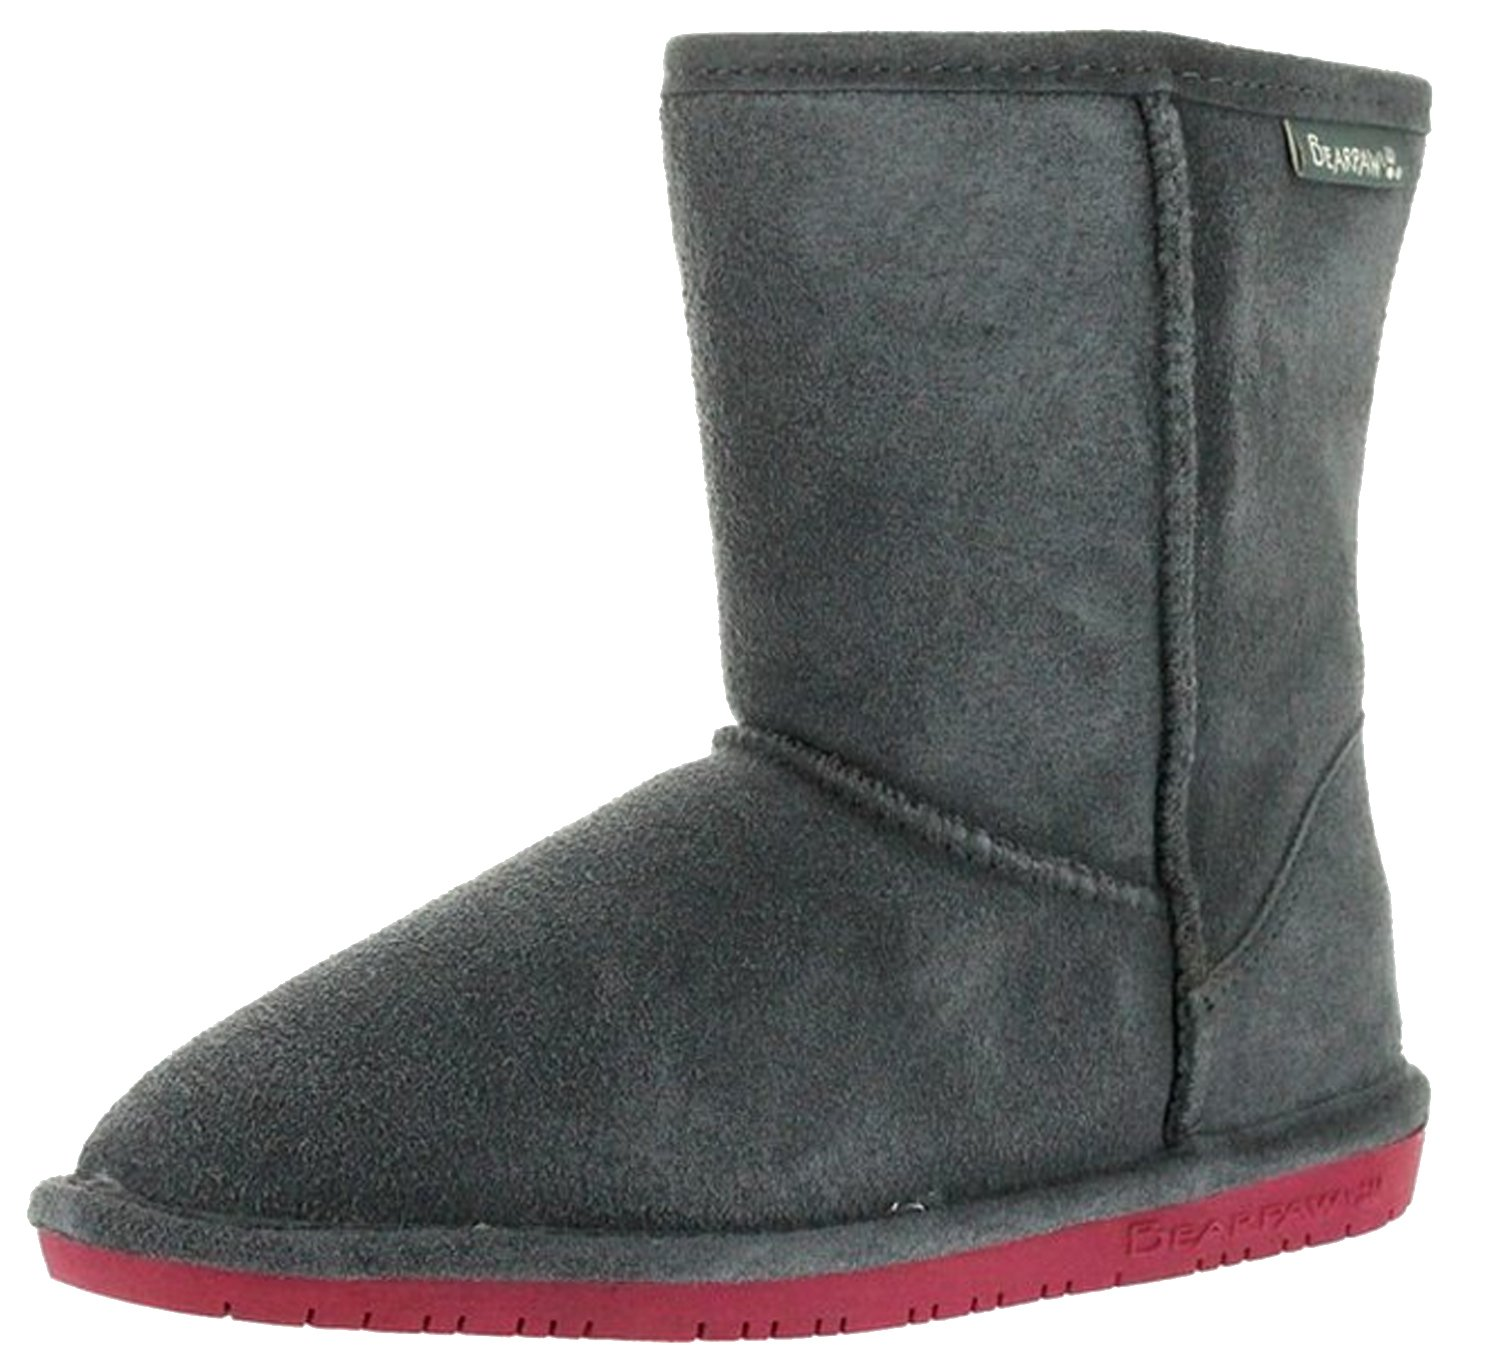 Bearpaw Emma 608Y Kids Boots,Charcoal/Pomberry,5